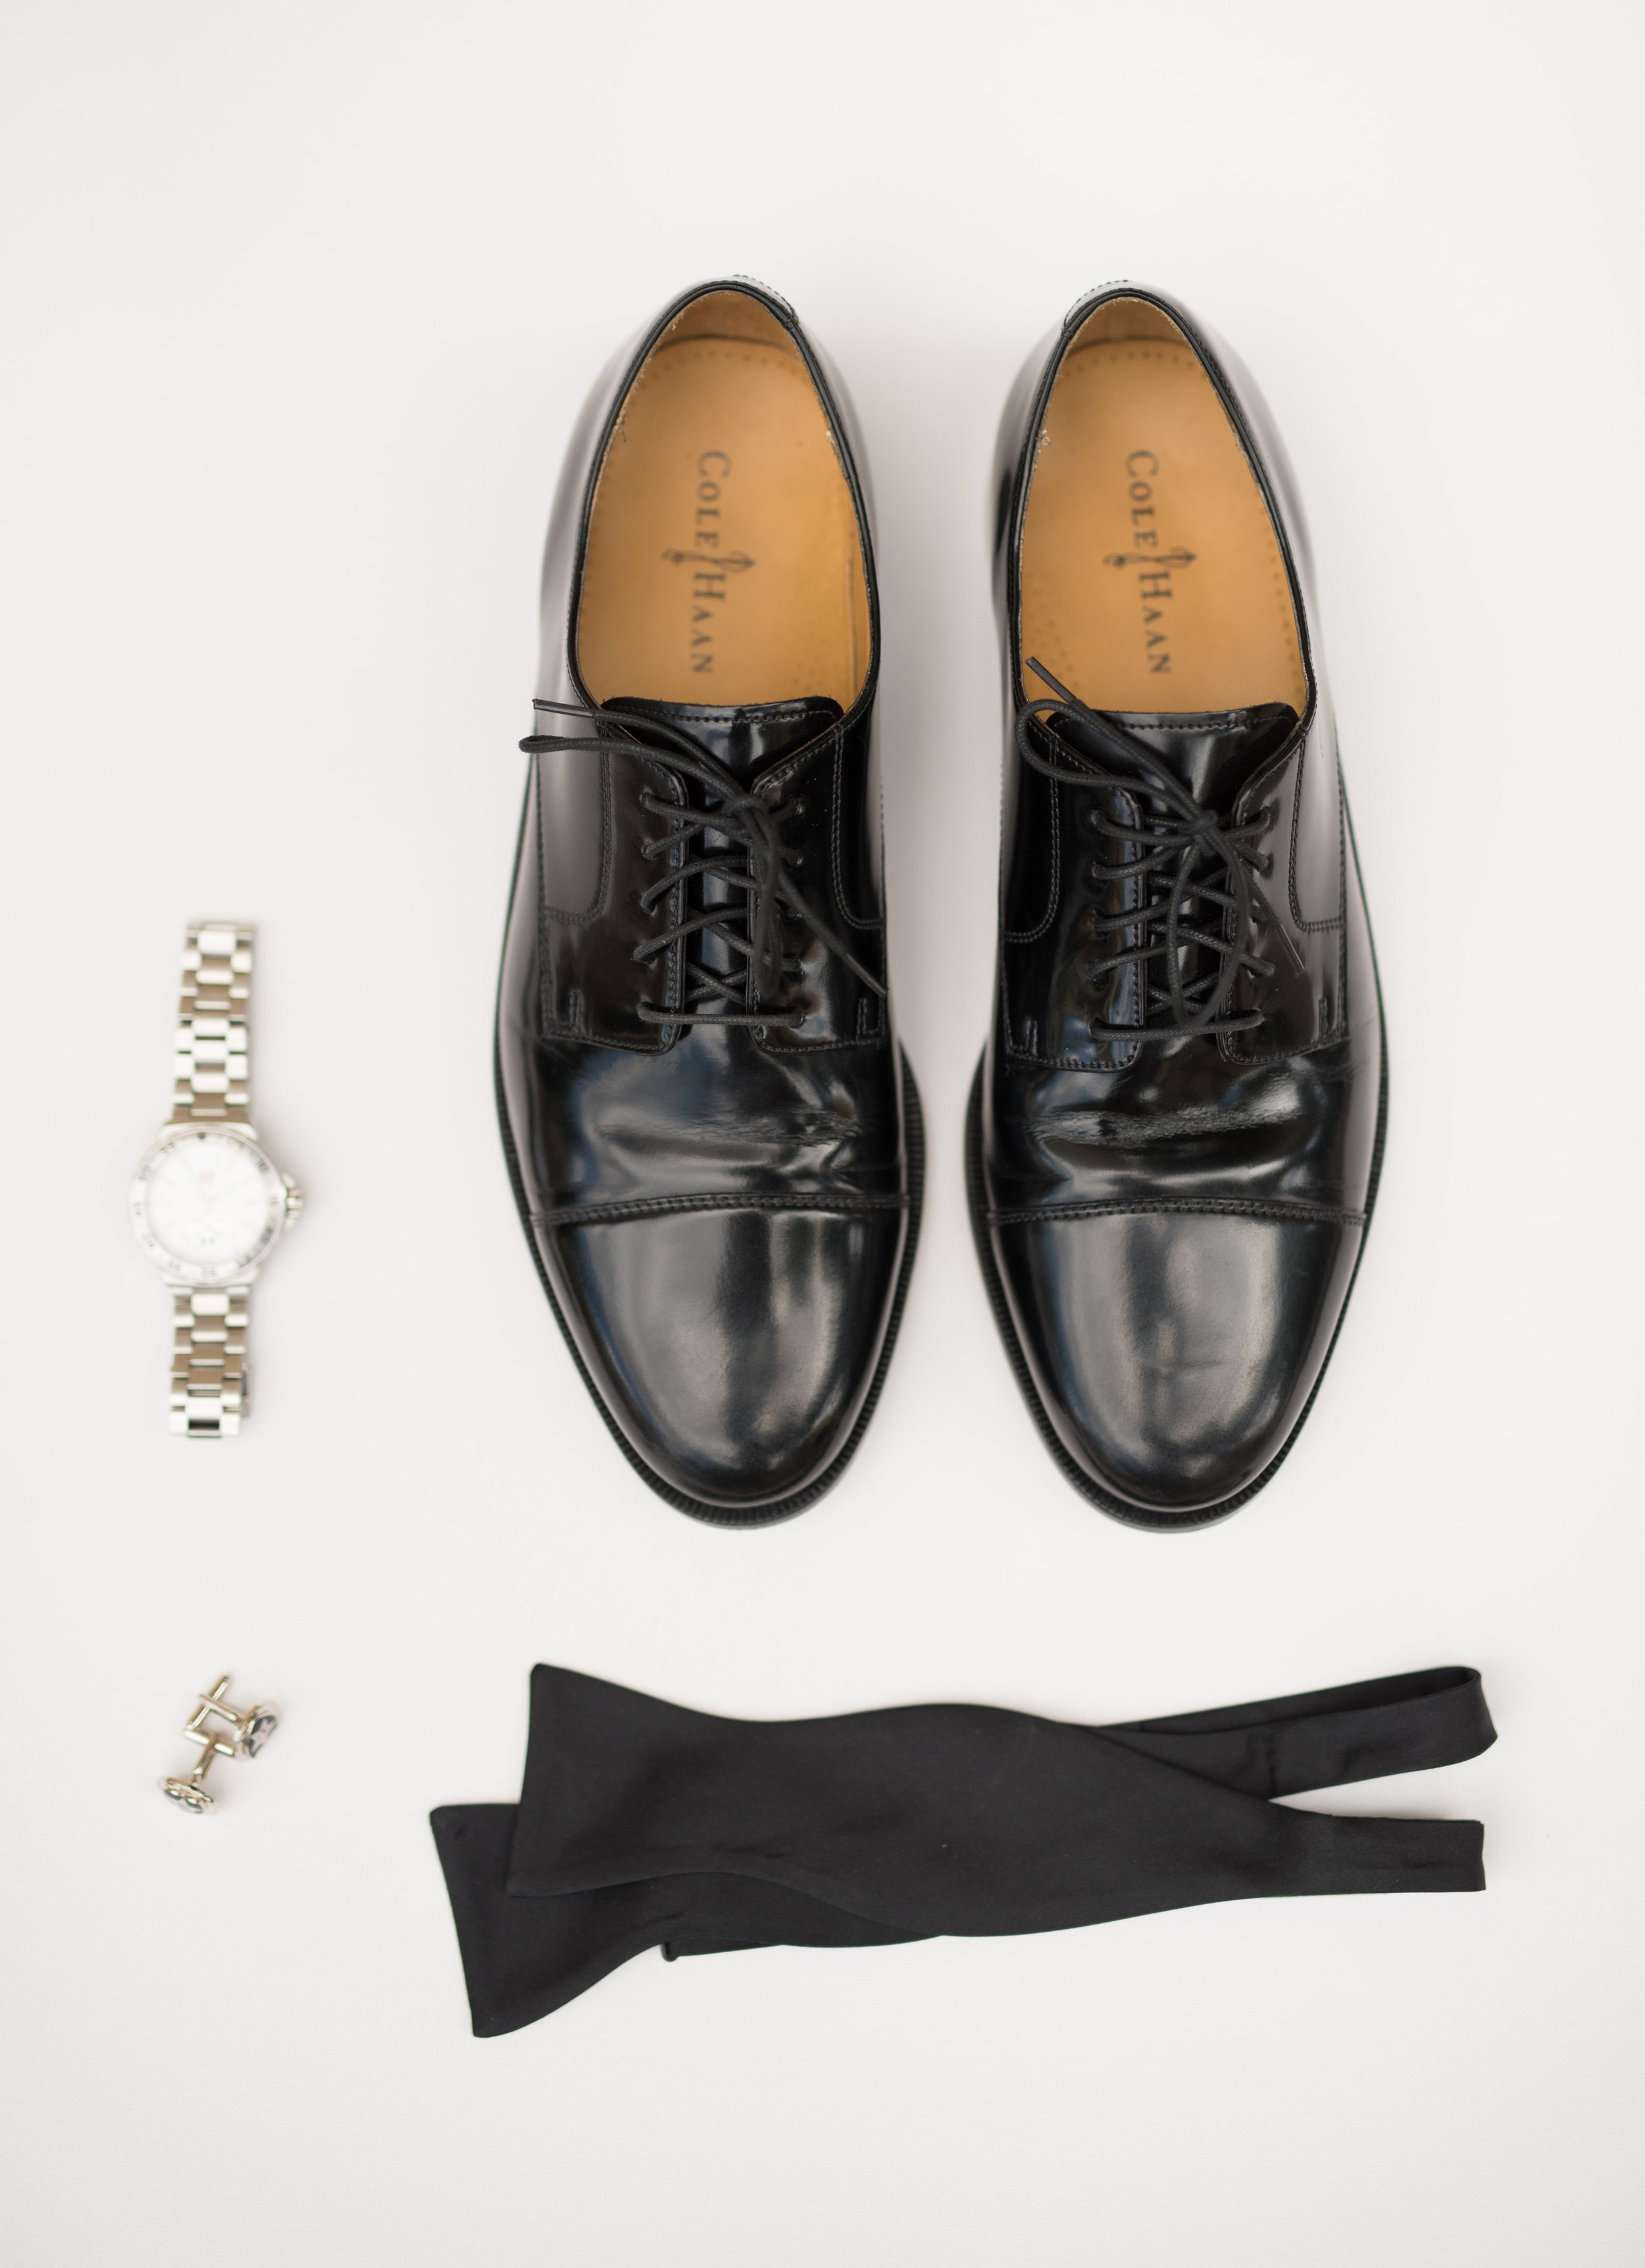 Groom details, groom shoes, groom watch